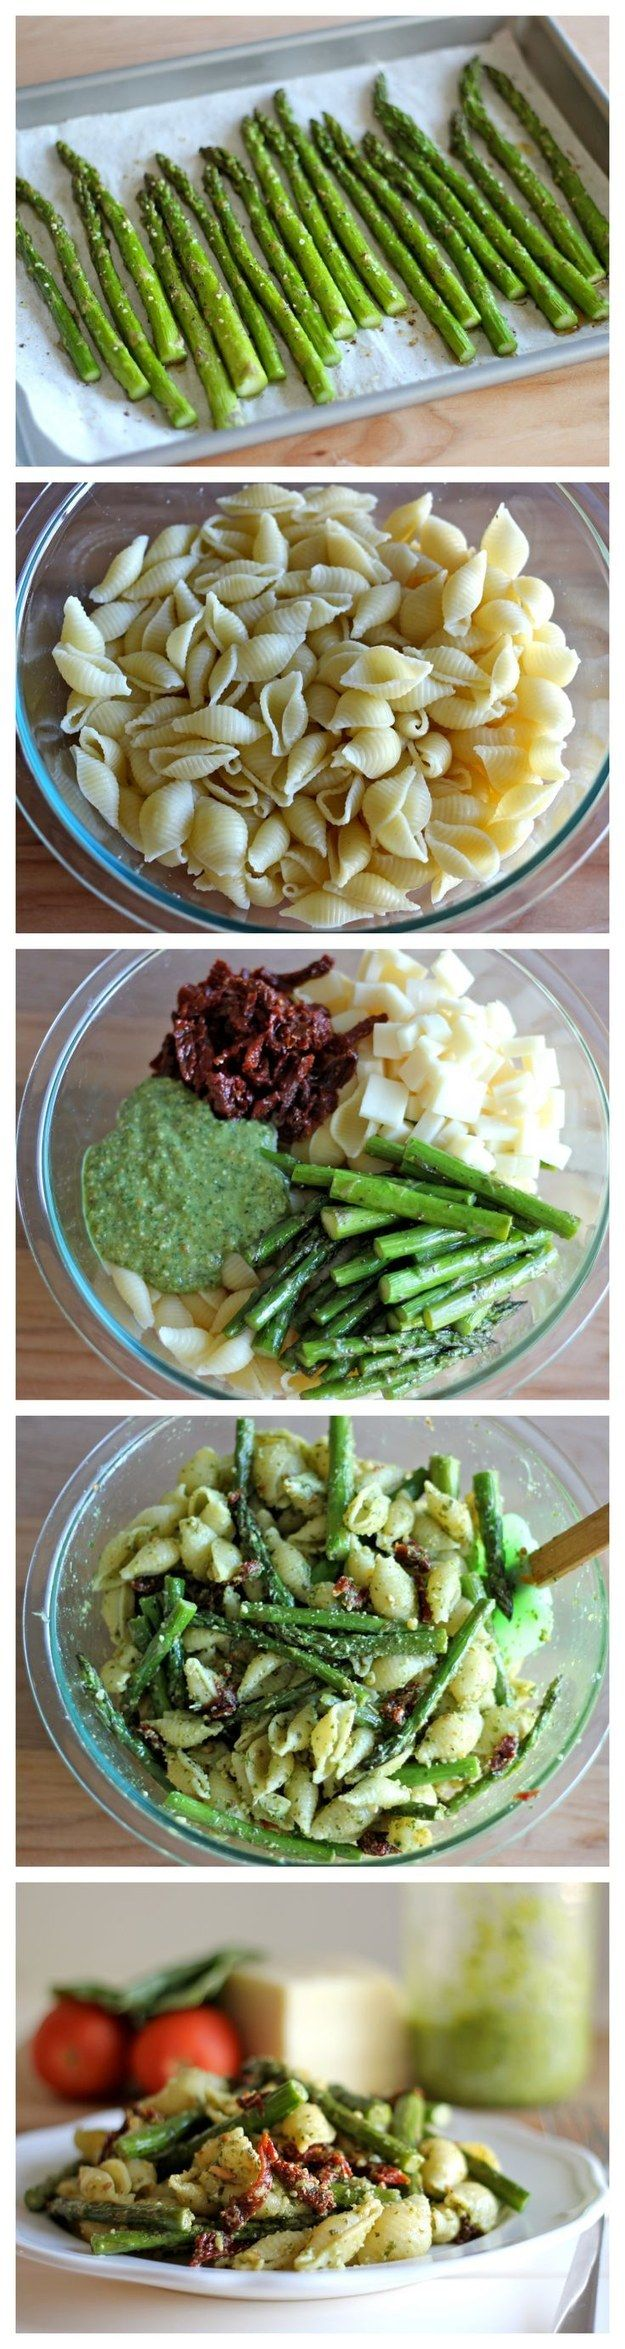 Italian Food ~ #food #Italian #italianfood #ricette #recipes #pasta ~ Pesto Pasta with Sundried Tomatoes and Roasted Asparagus